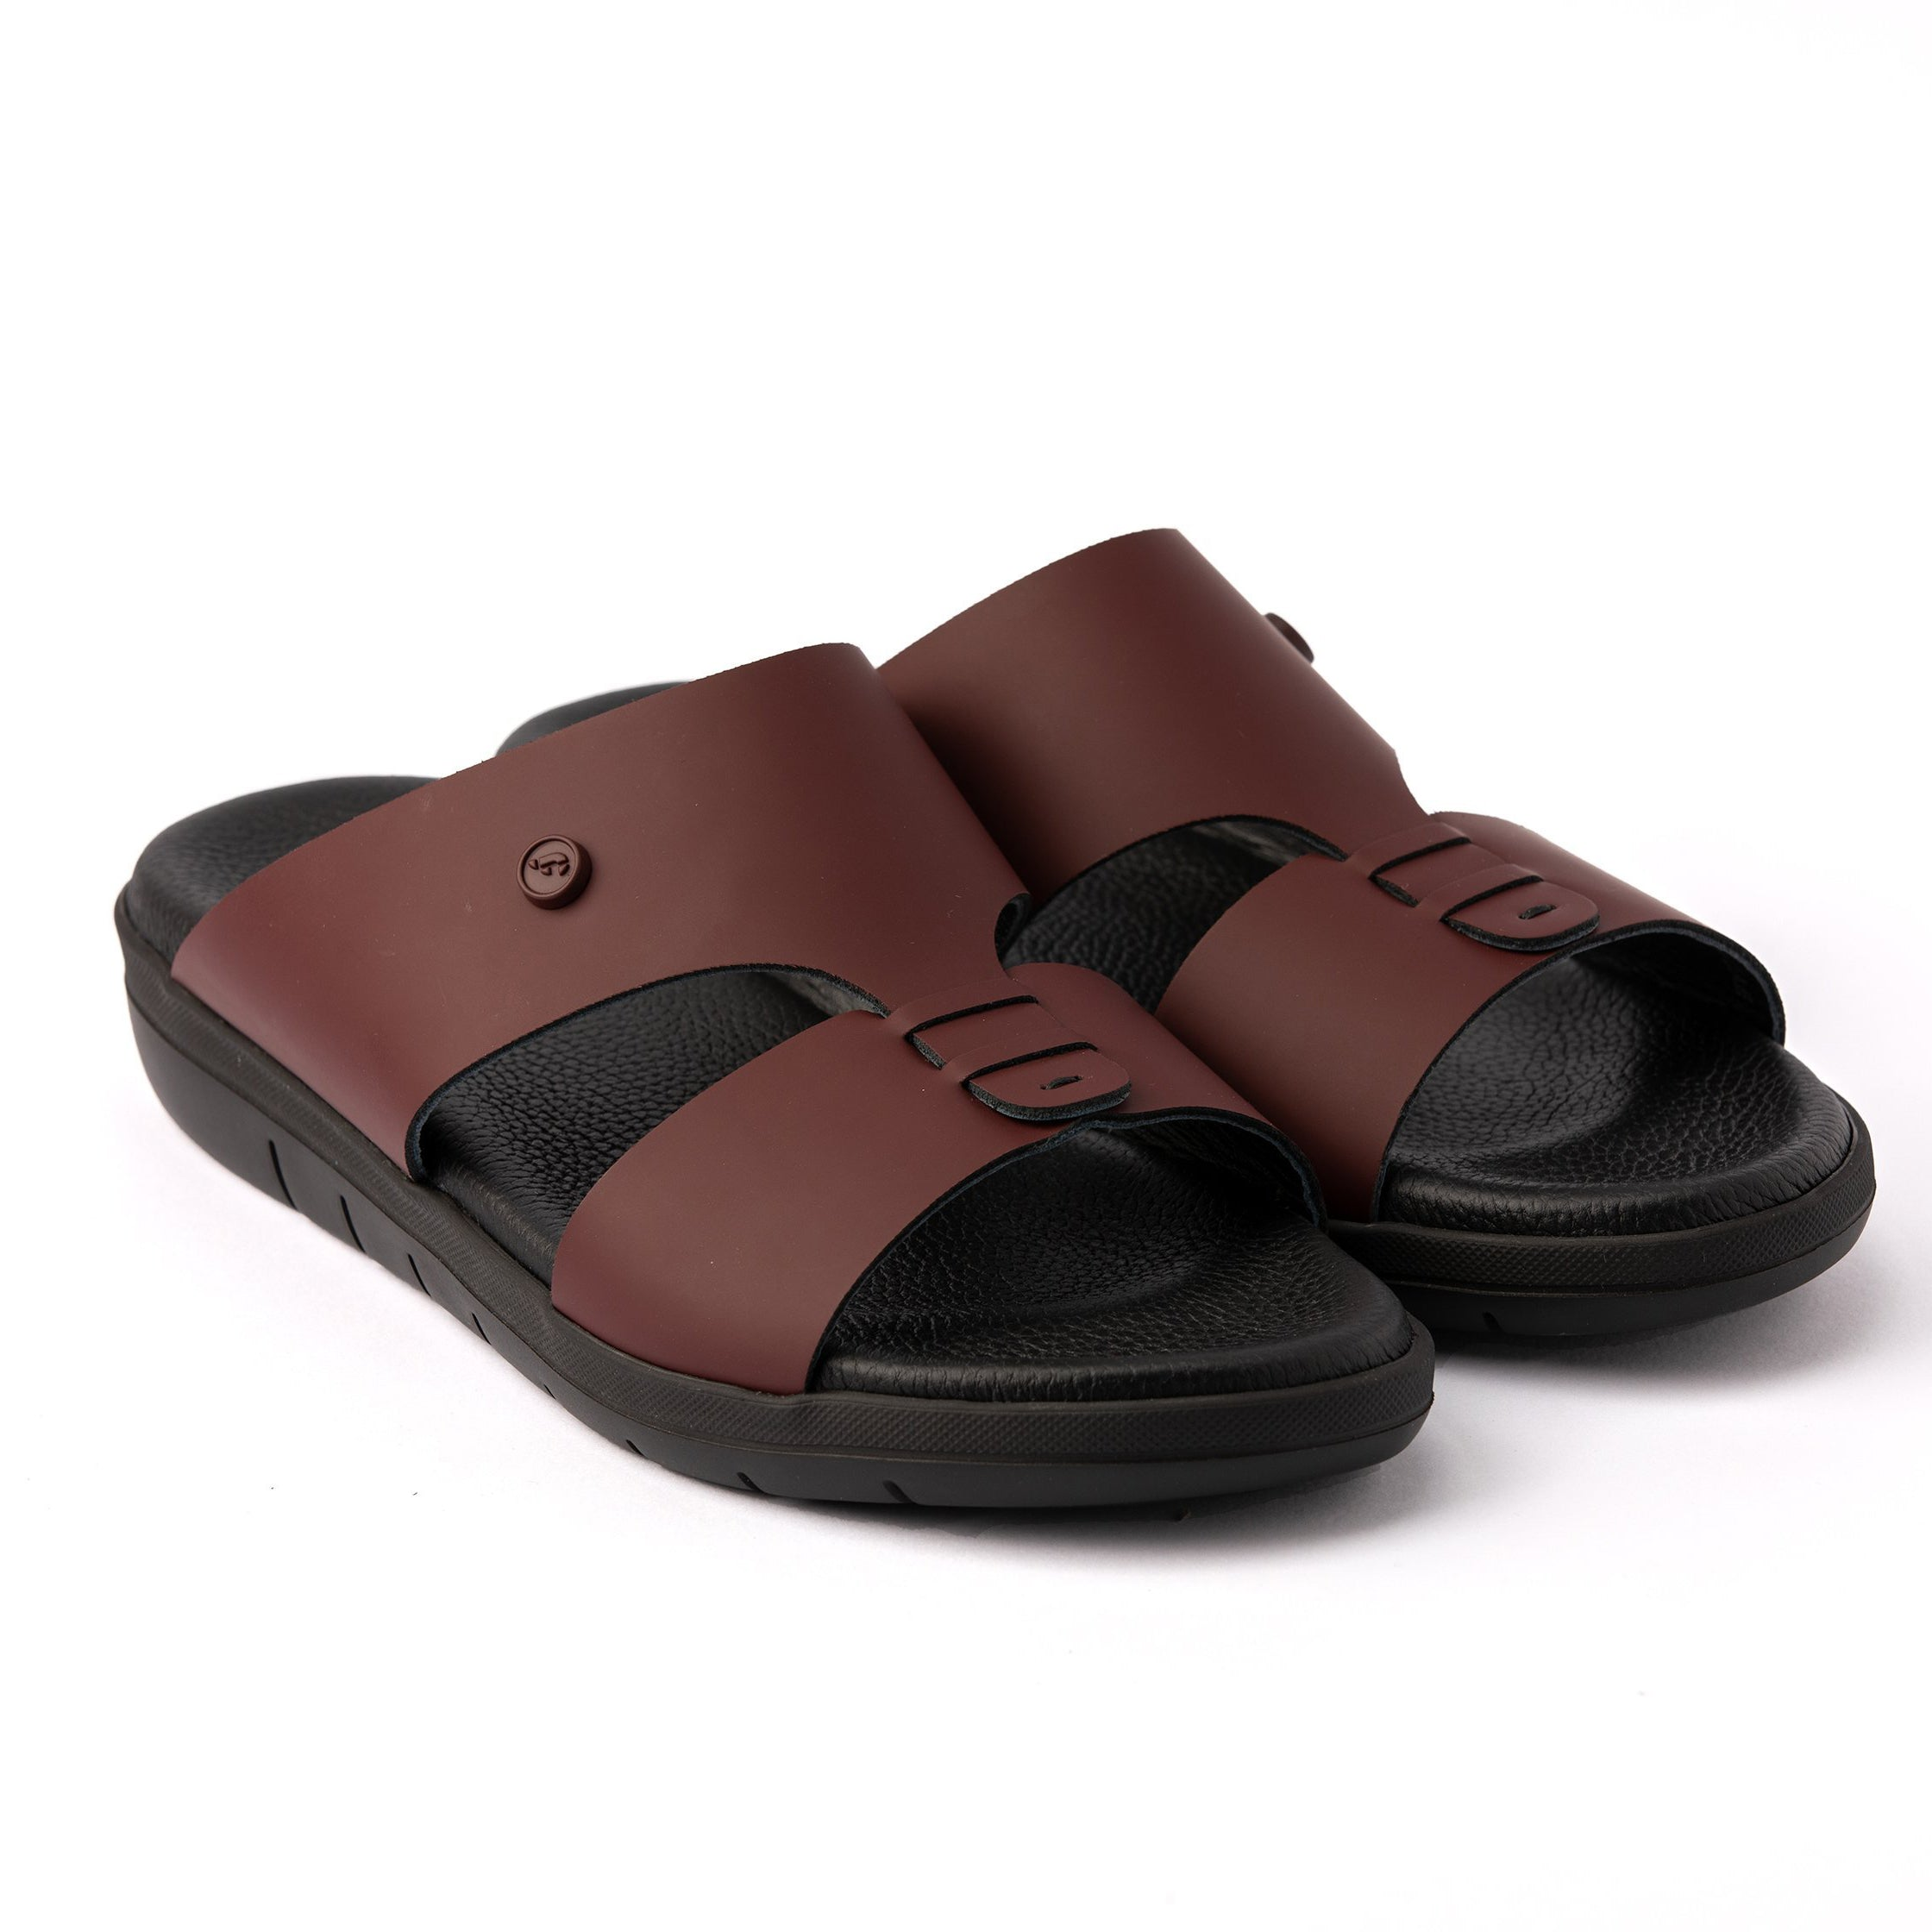 MAROON Matt(901) Arabic Sandals